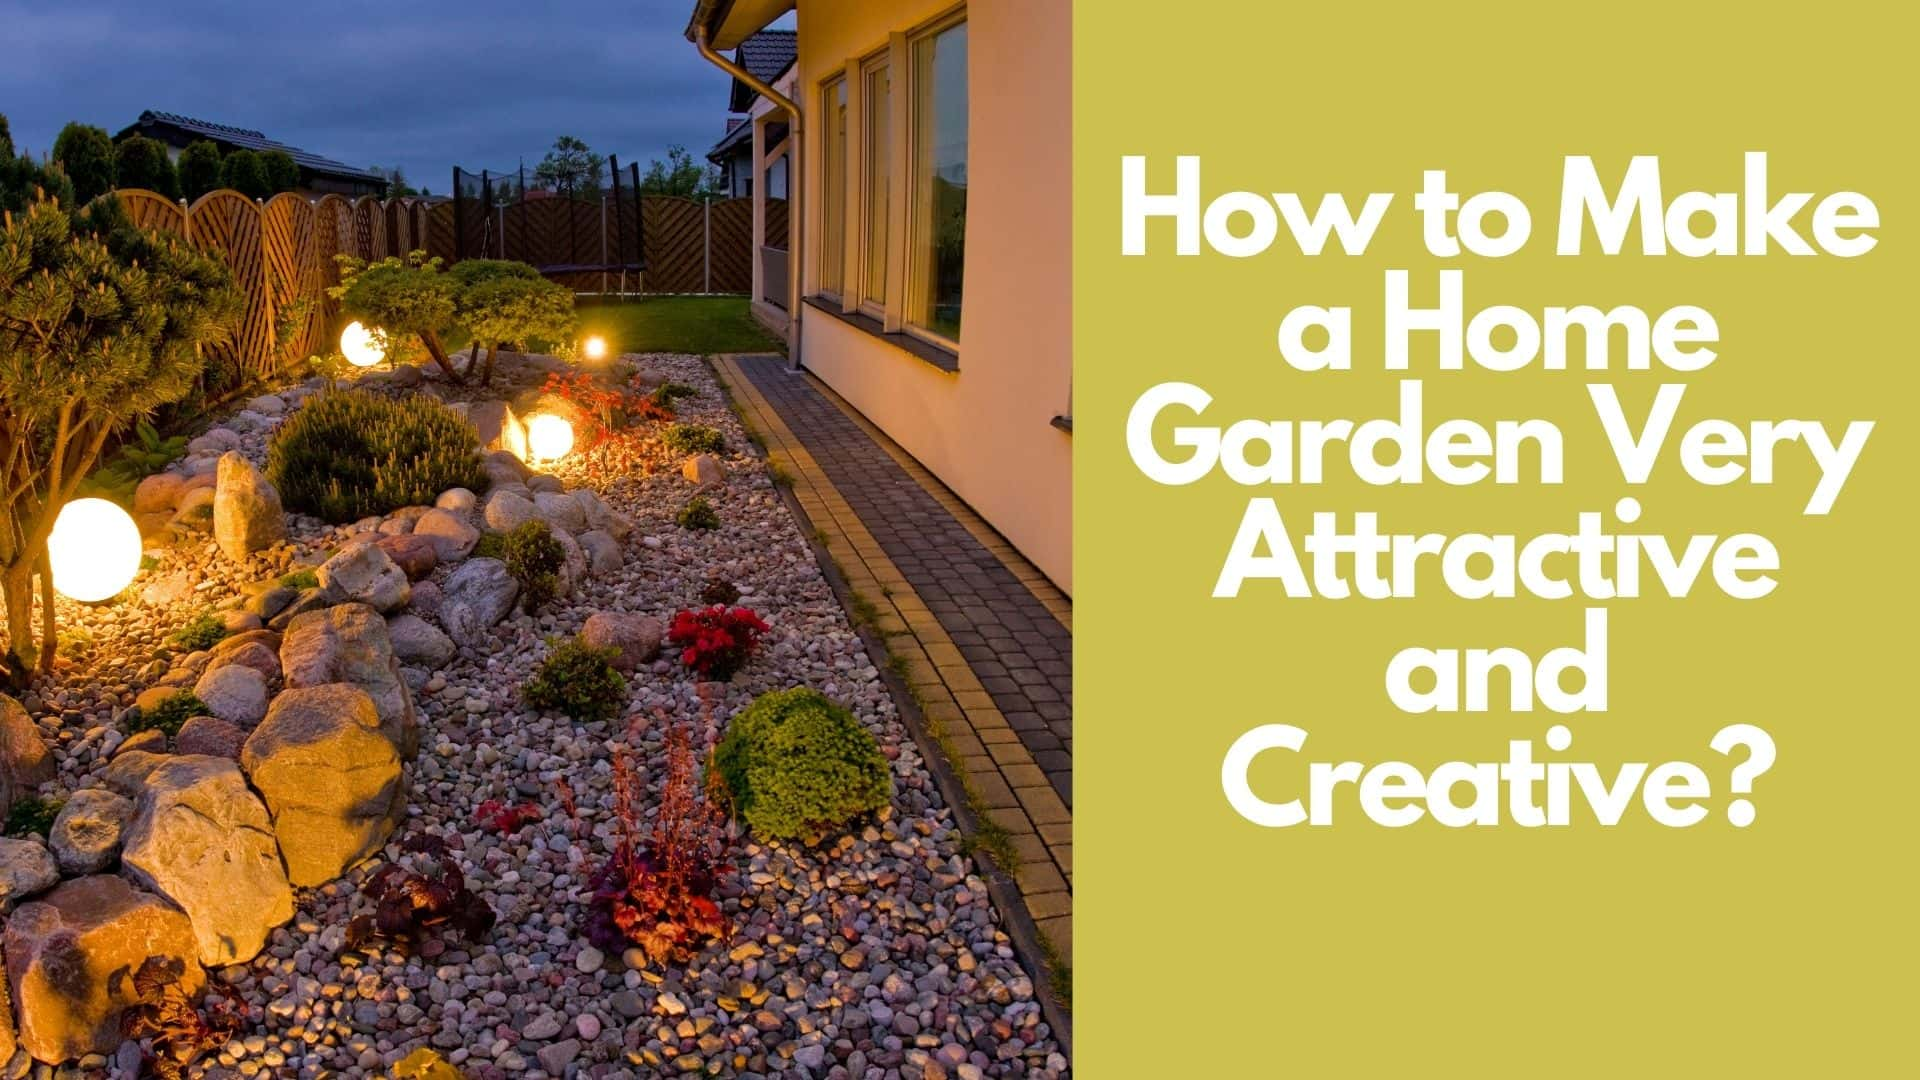 How to Make a Home Garden Very Attractive and Creative?